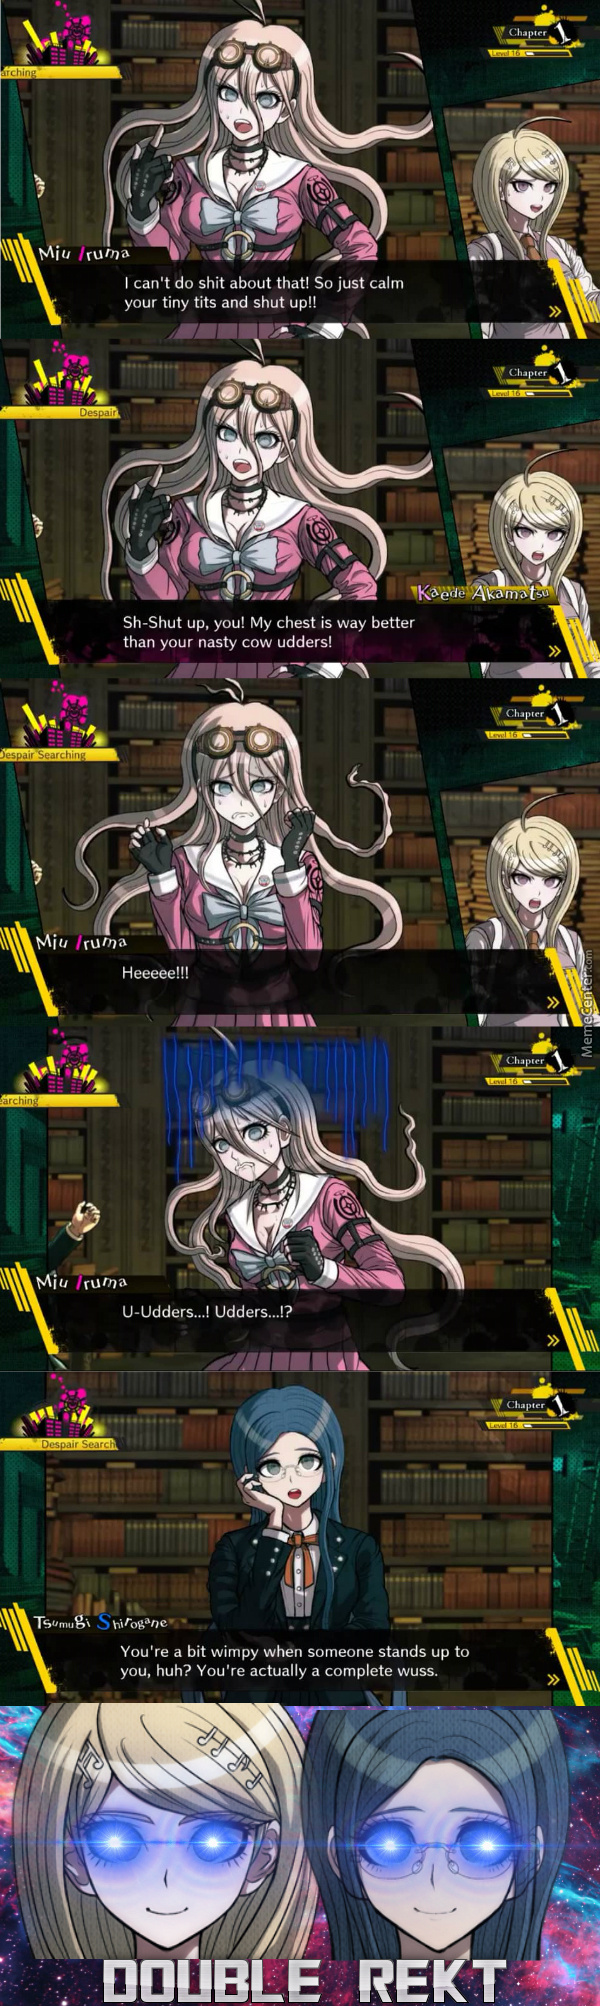 Smoogs And Kayday Got No Chill  :l (Game: Danganronpa V3) by